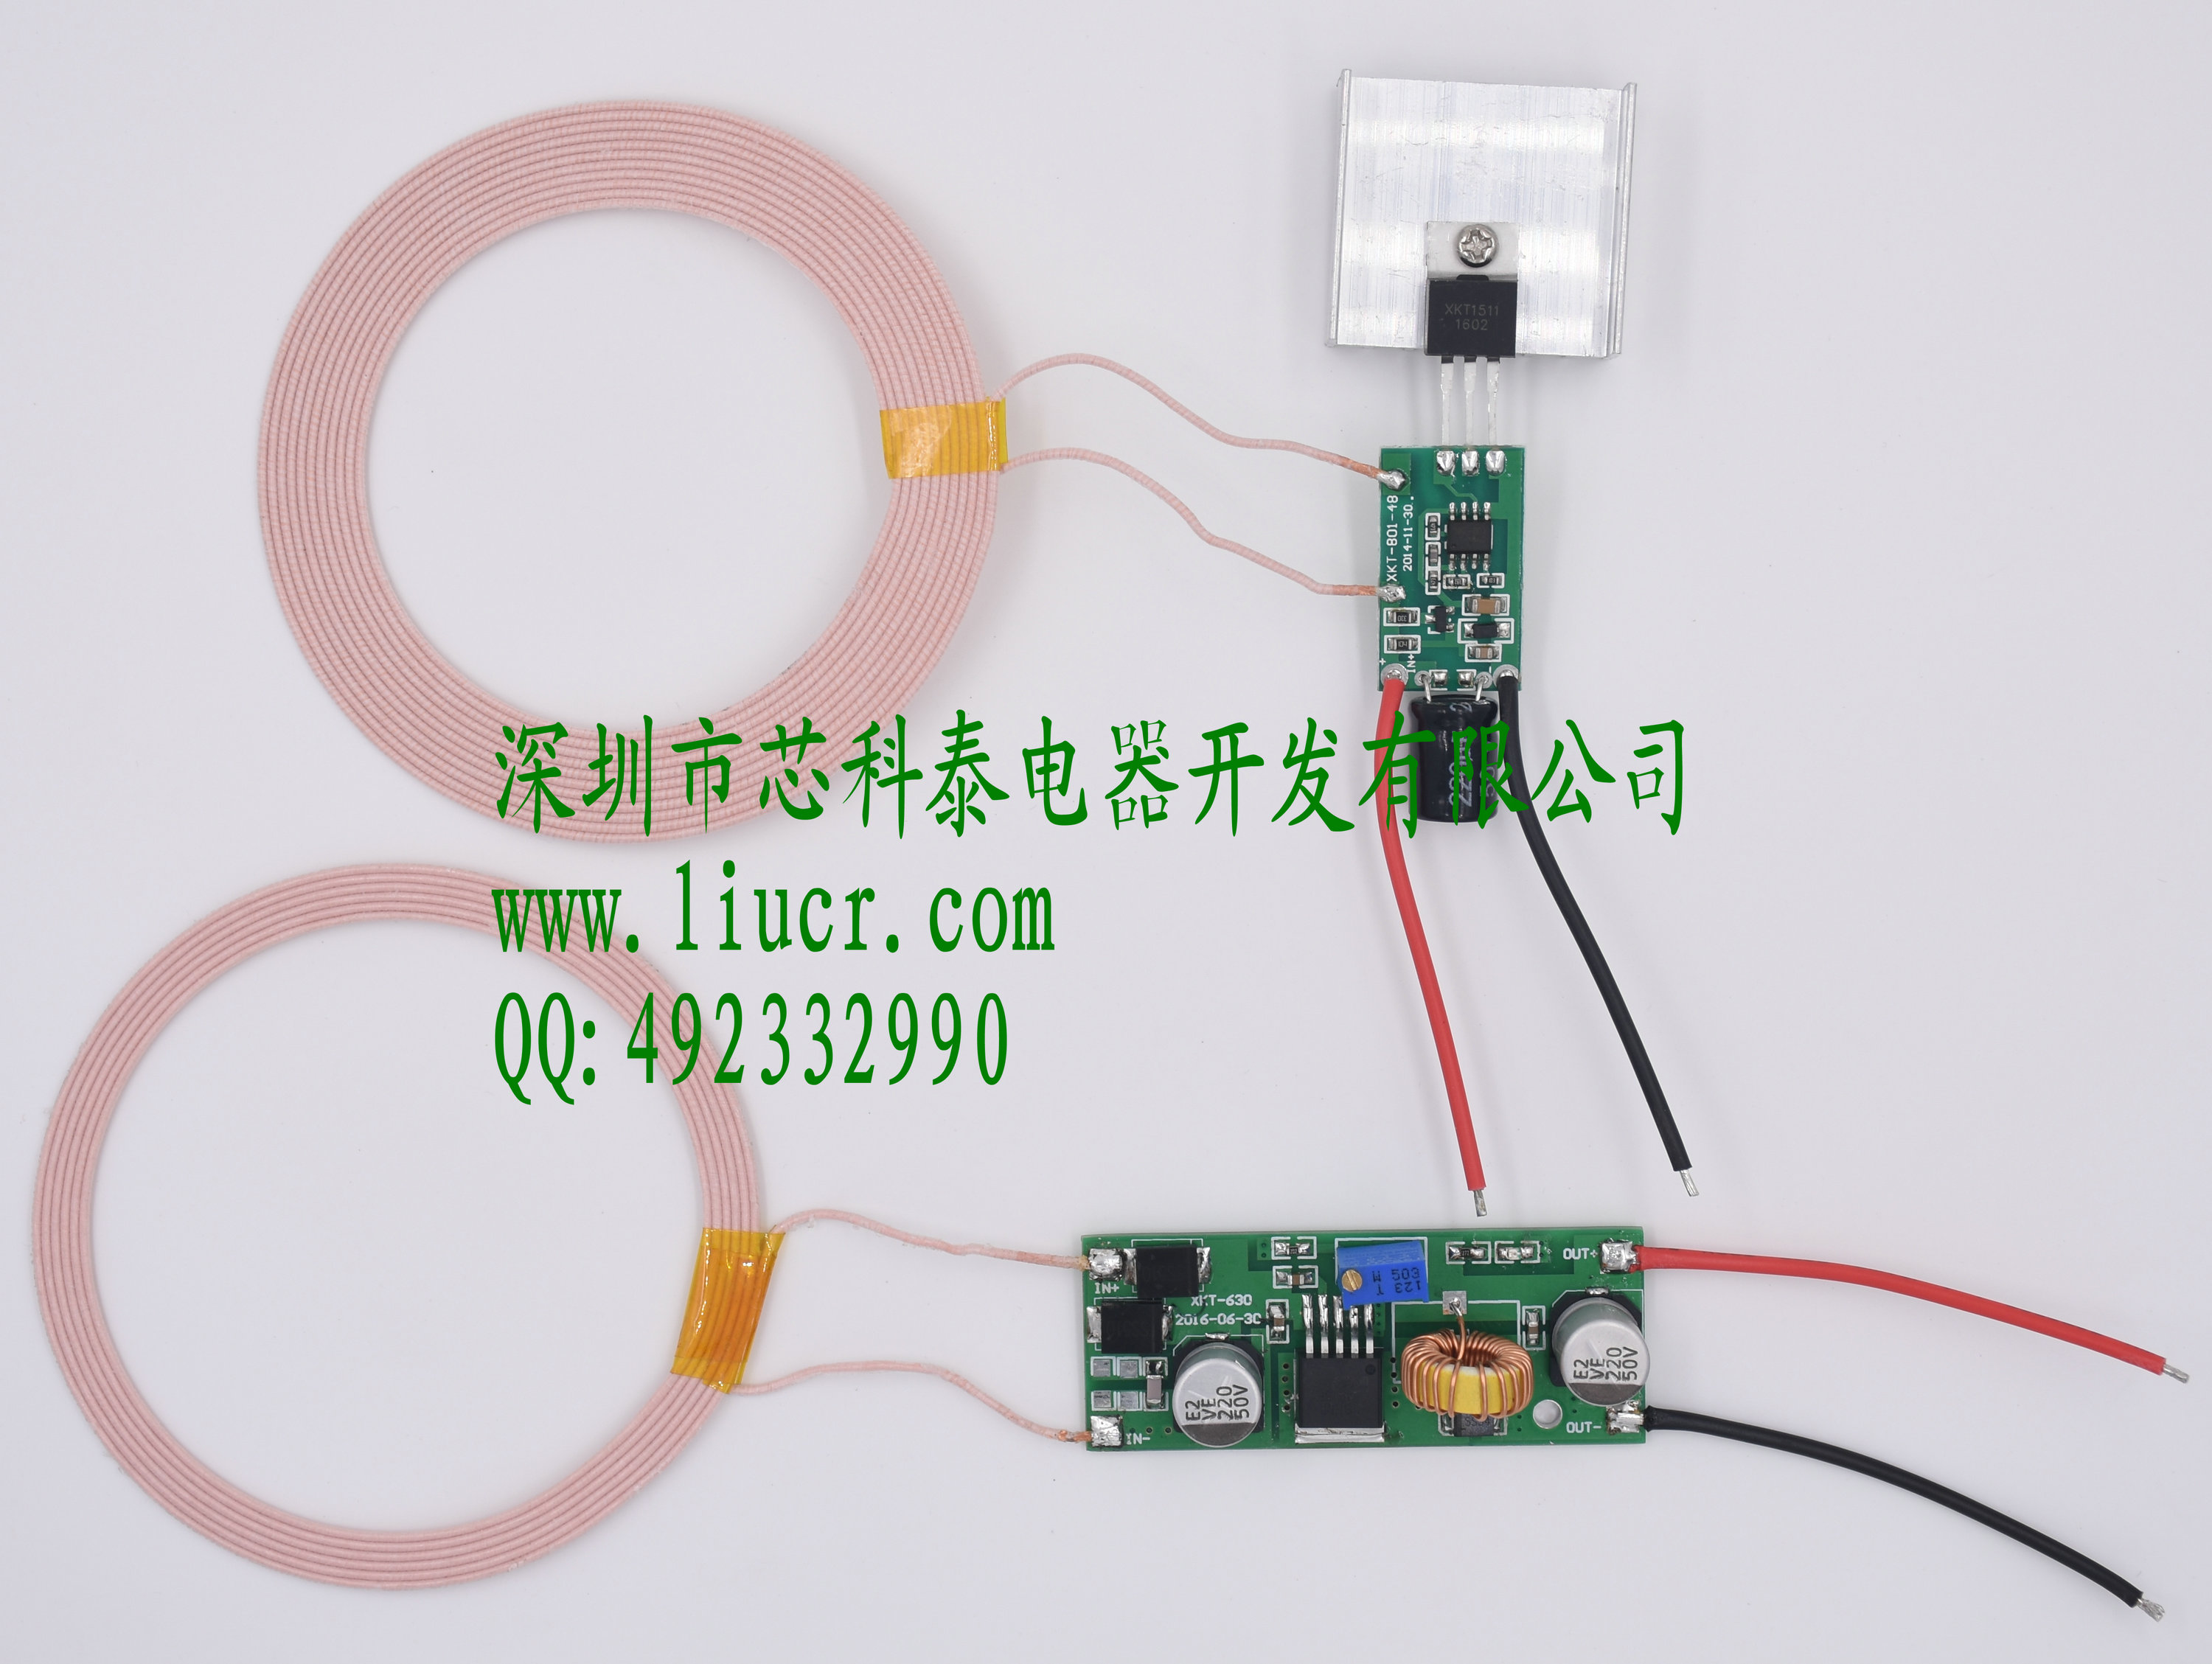 5V 5A high current 24V low voltage wireless charging module IC scheme<br>